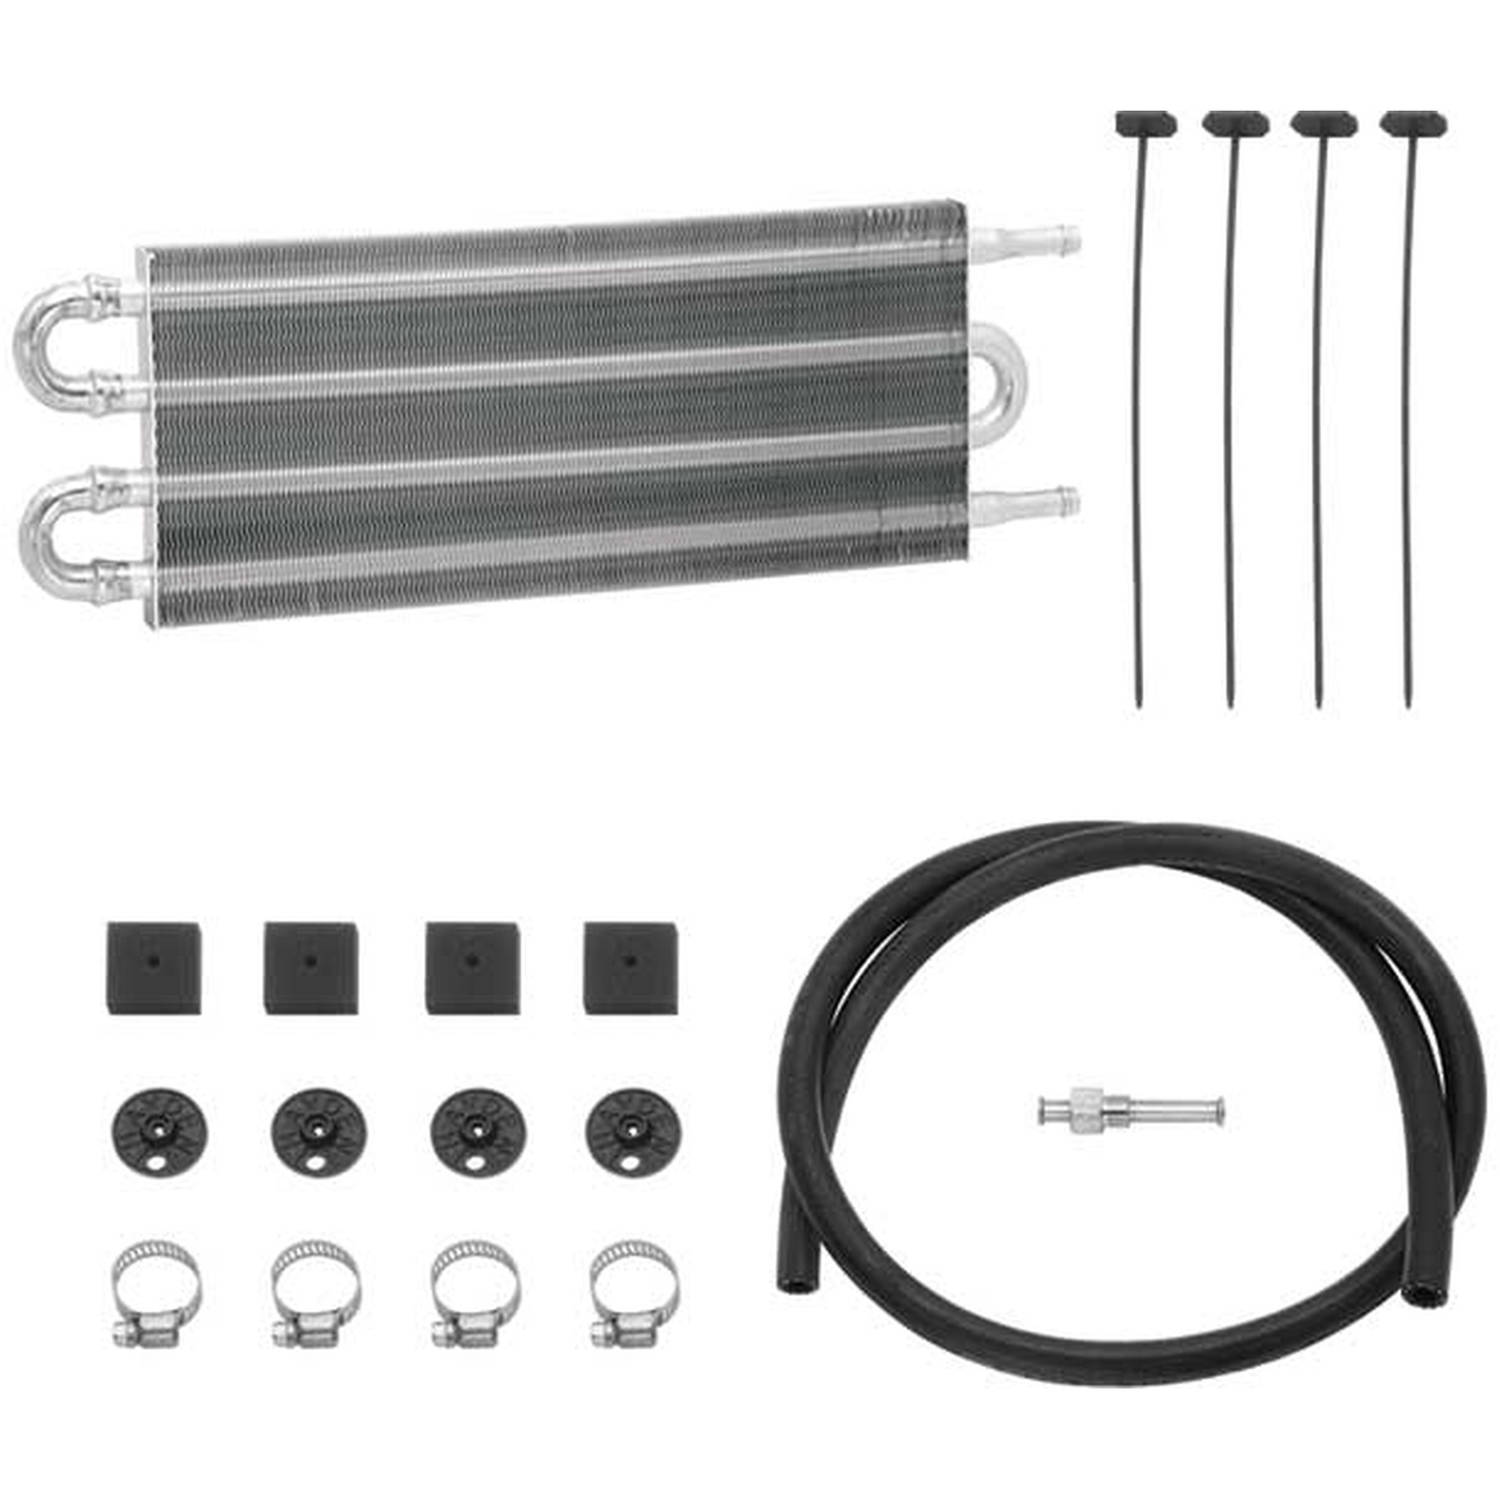 Medium Duty Trans Cooler -2,000Lb Replacement Auto Part, Easy to Install